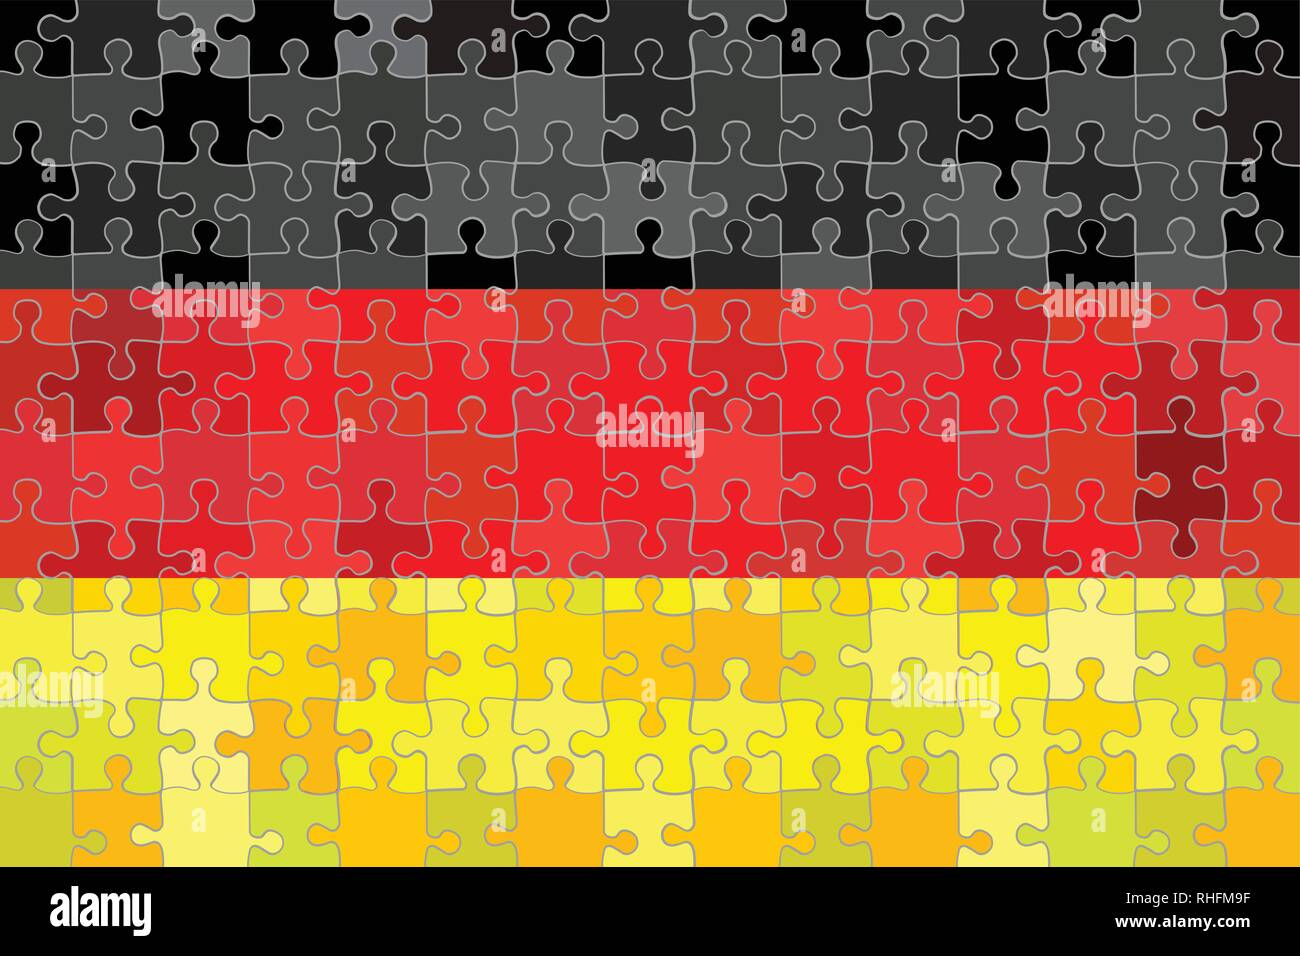 Germany flag made of puzzle background - Illustration - Stock Vector